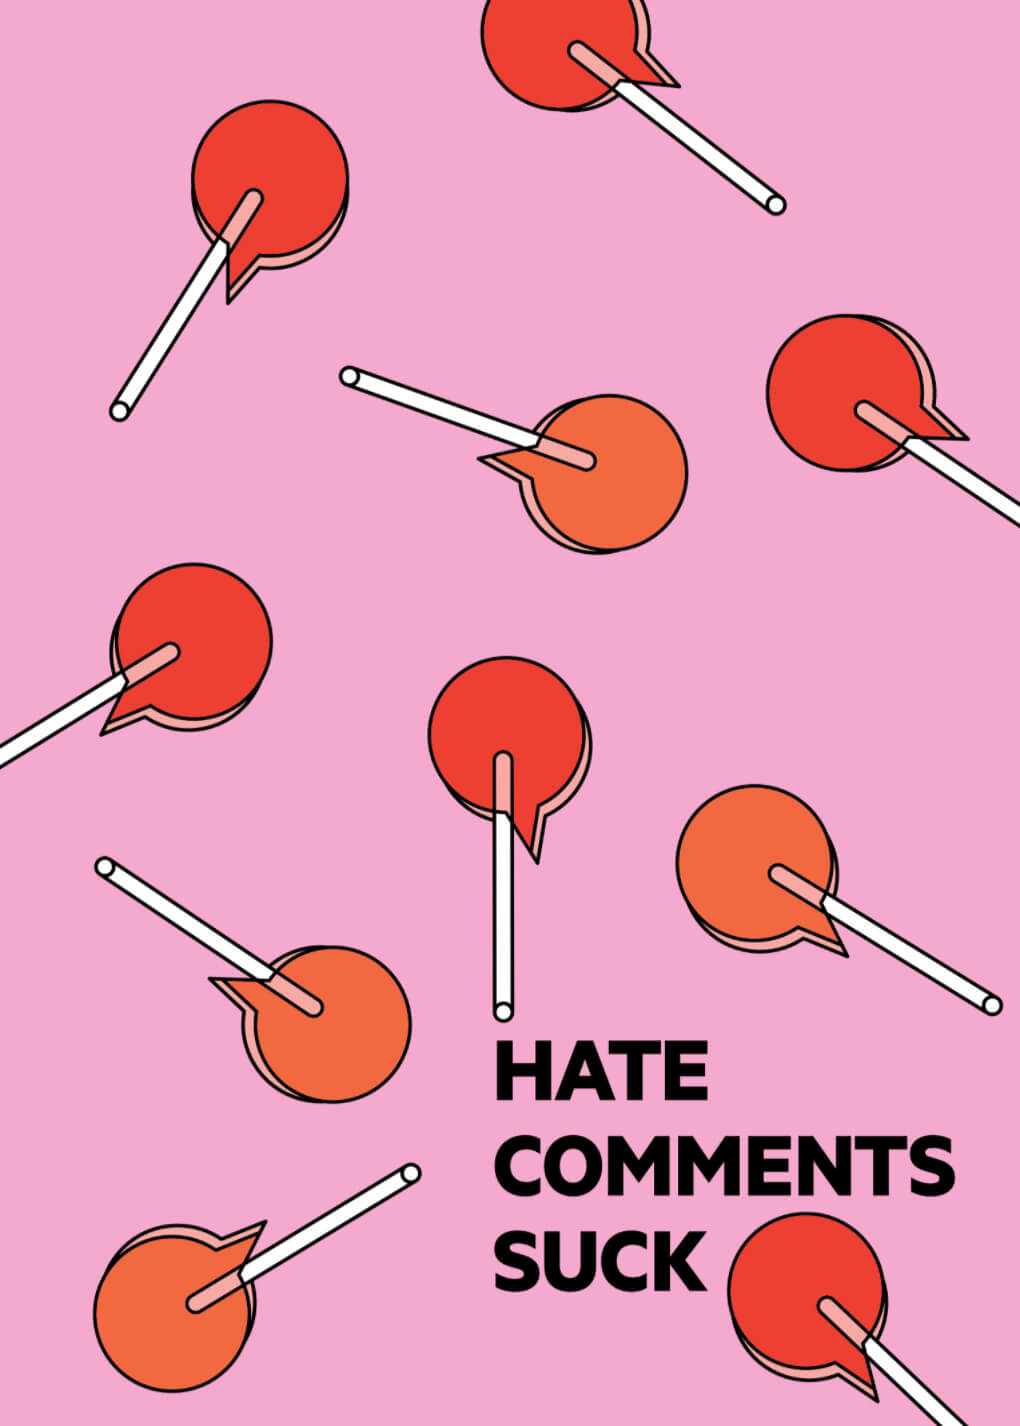 Hate Comments Suck (series 2/2) main image